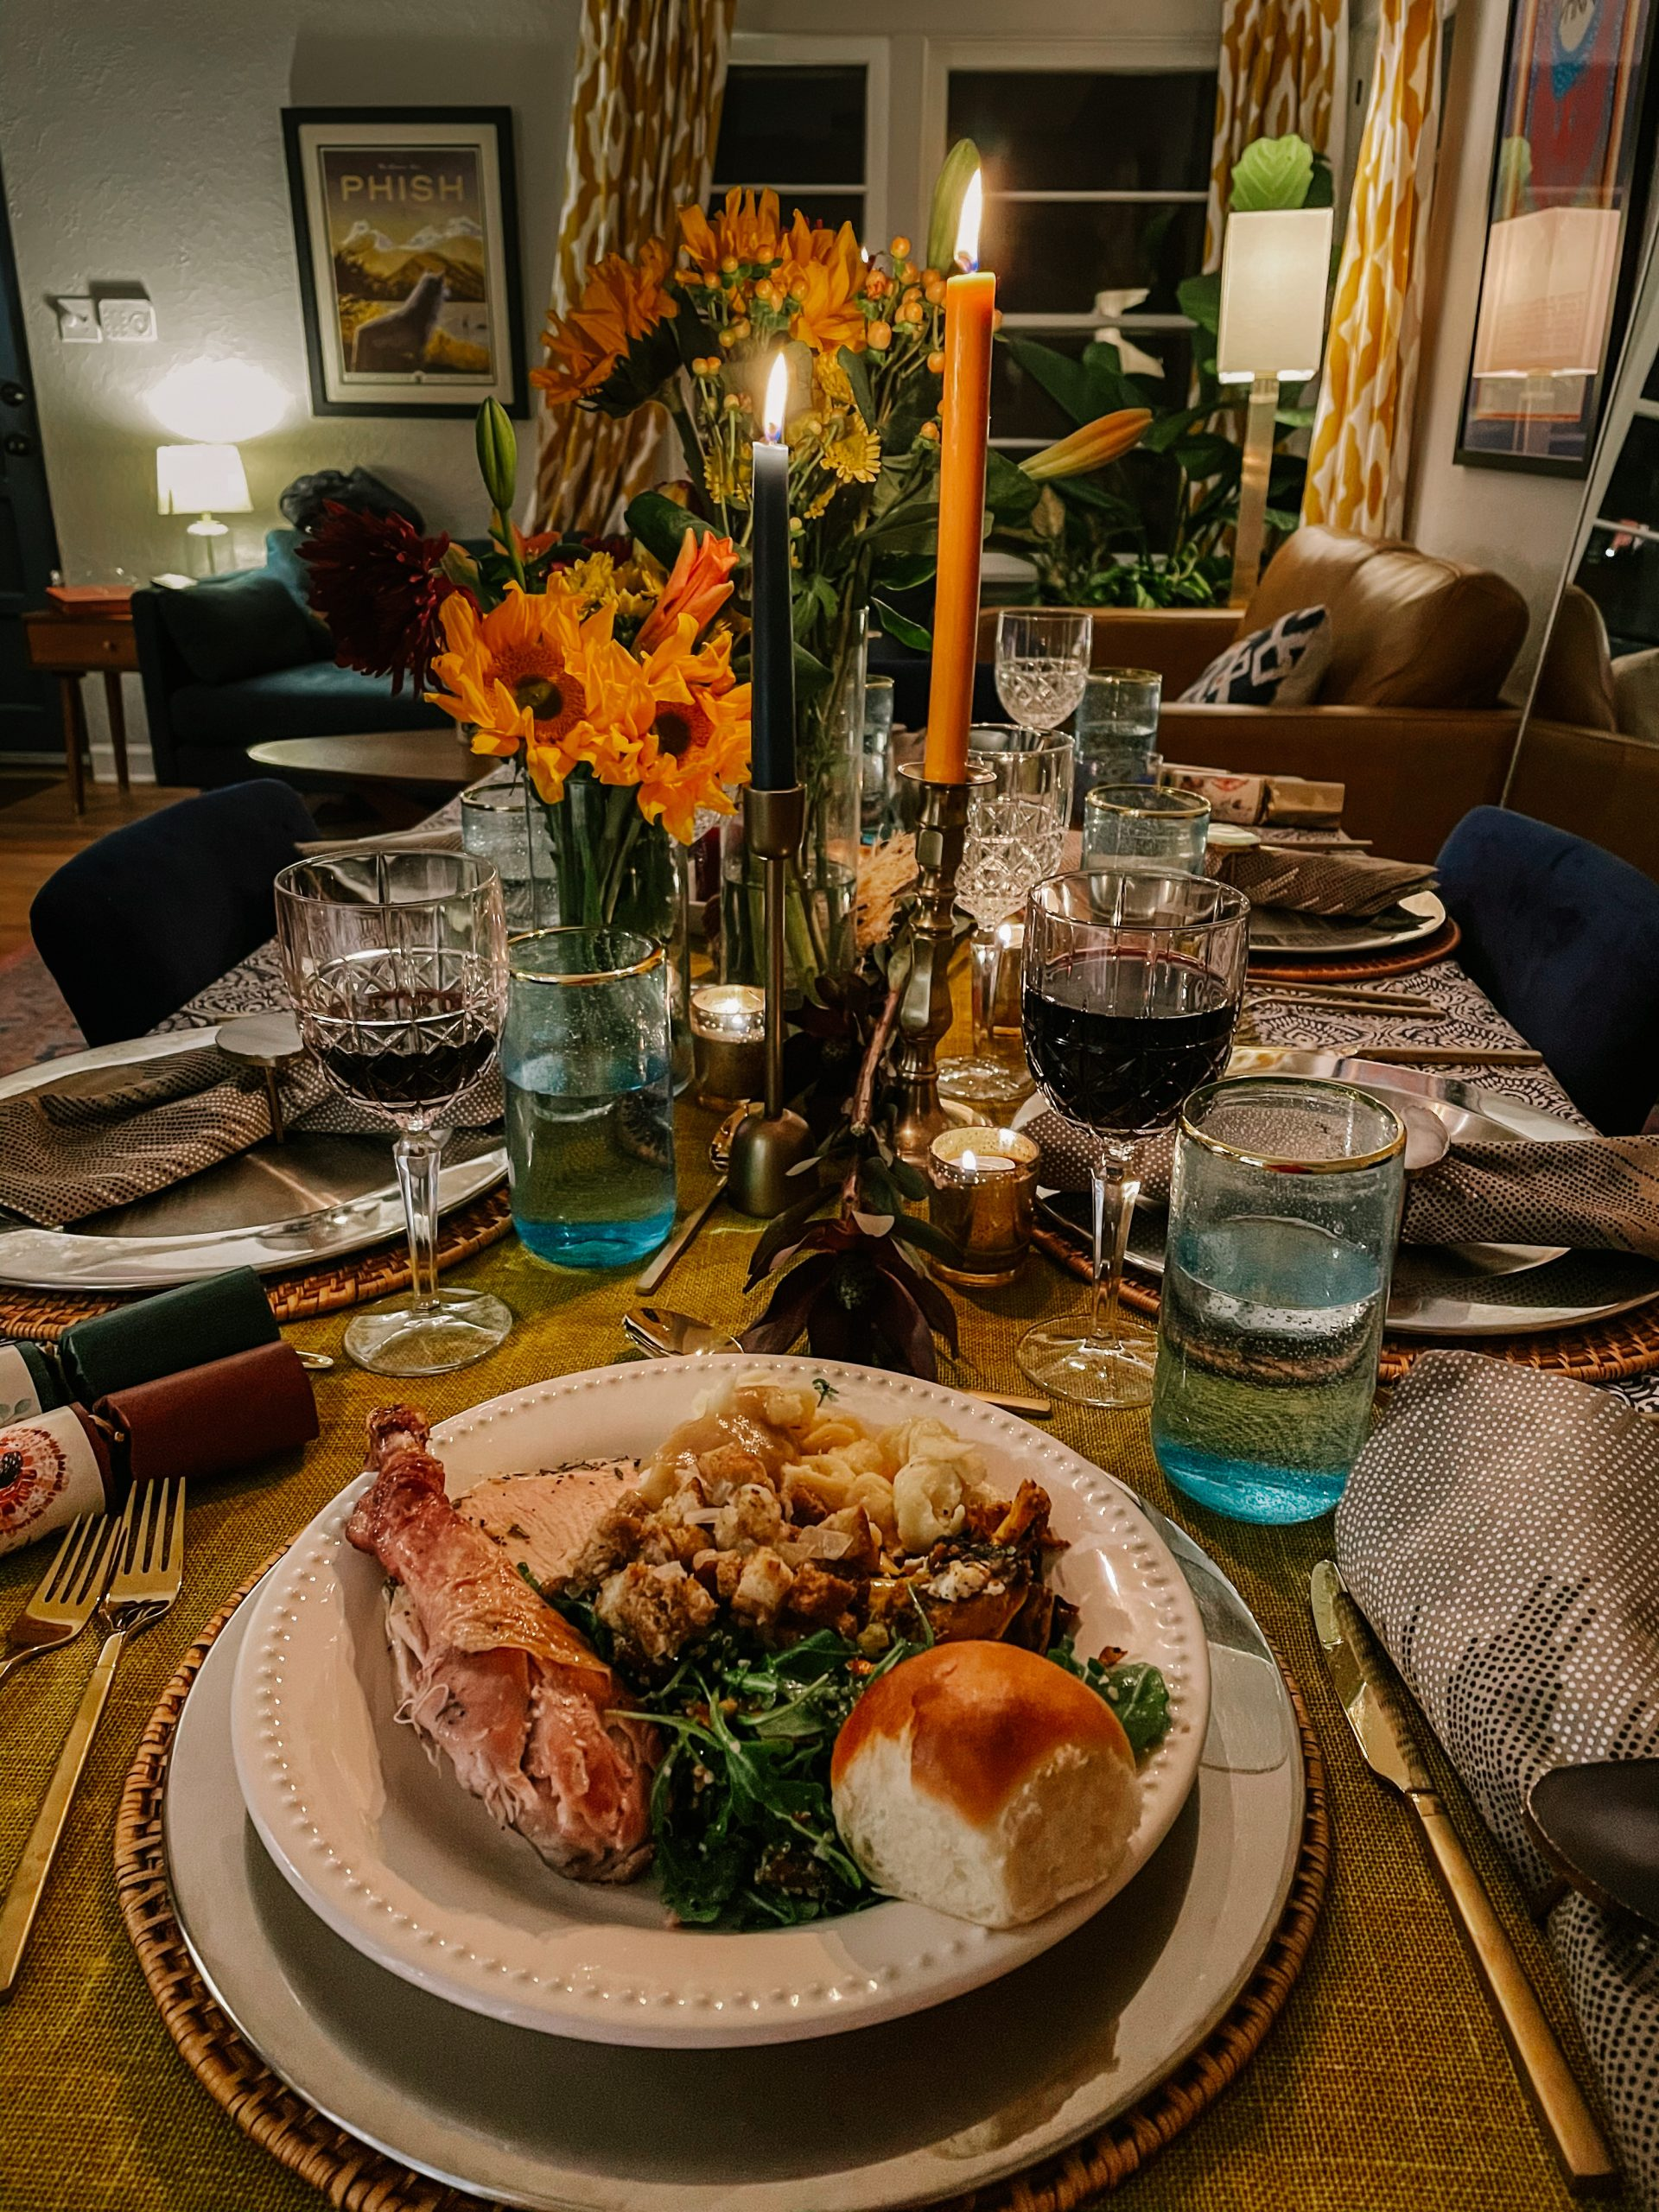 Friendsgiving tablescape and plate full of food